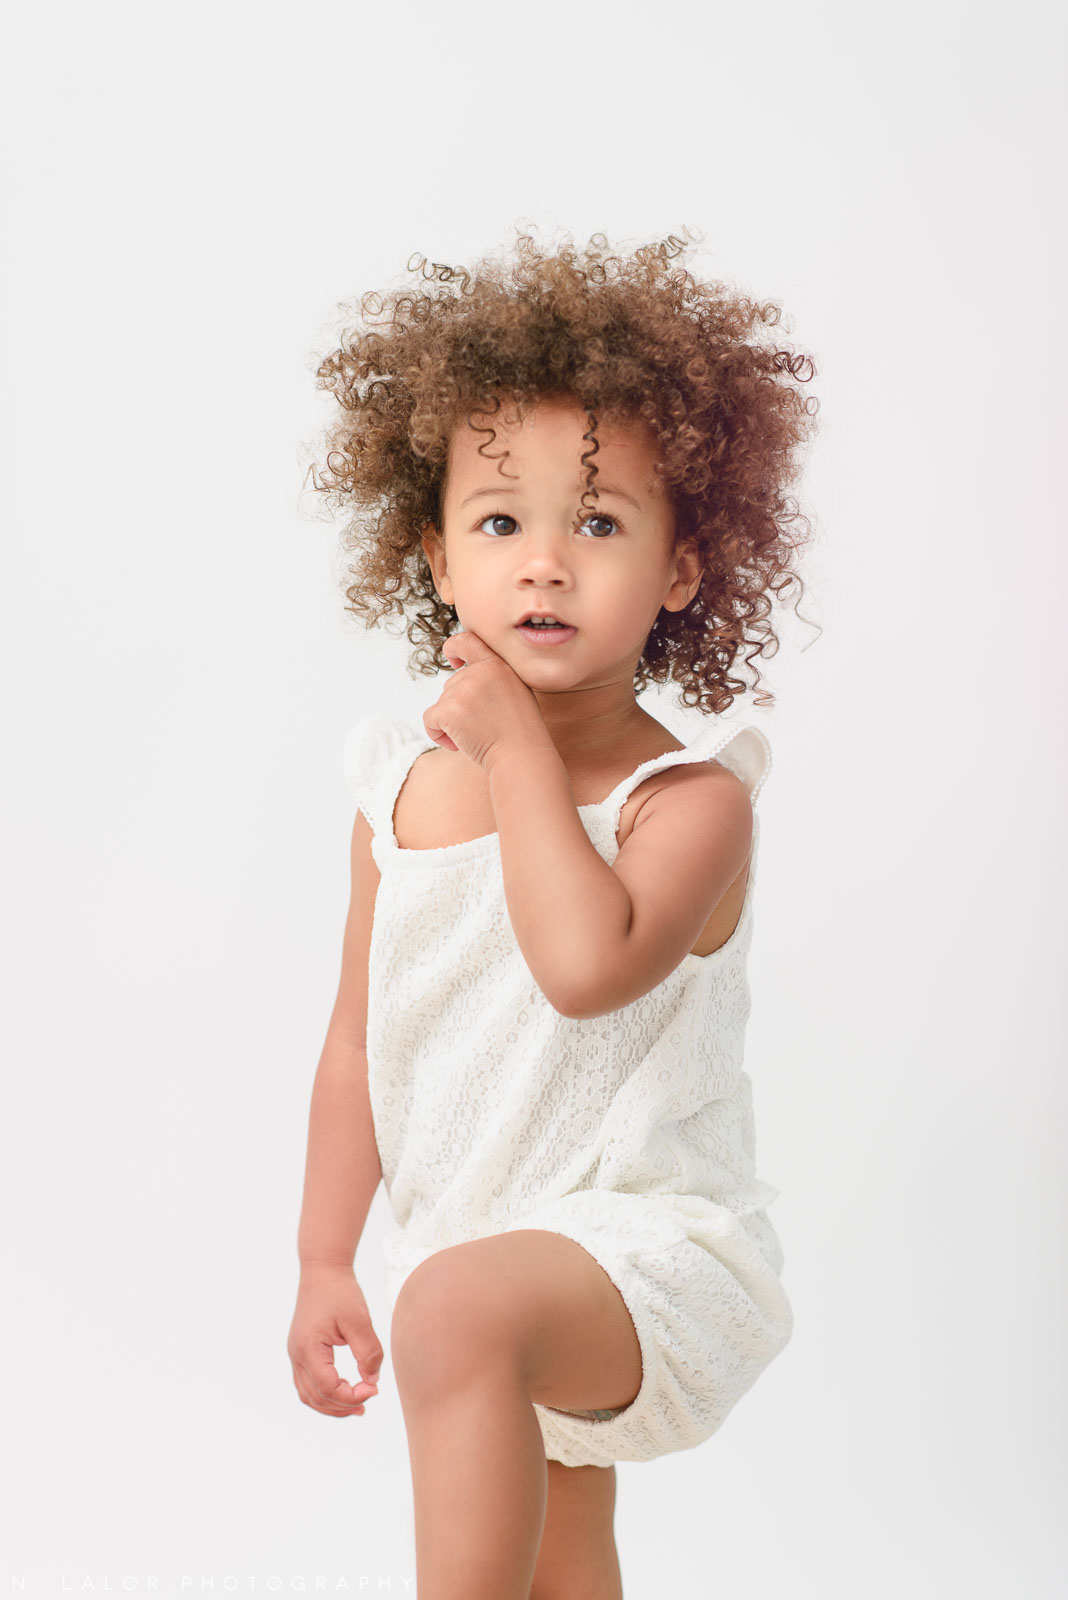 Little model. Studio portrait session with N. Lalor Photography in Greenwich, Connecticut.